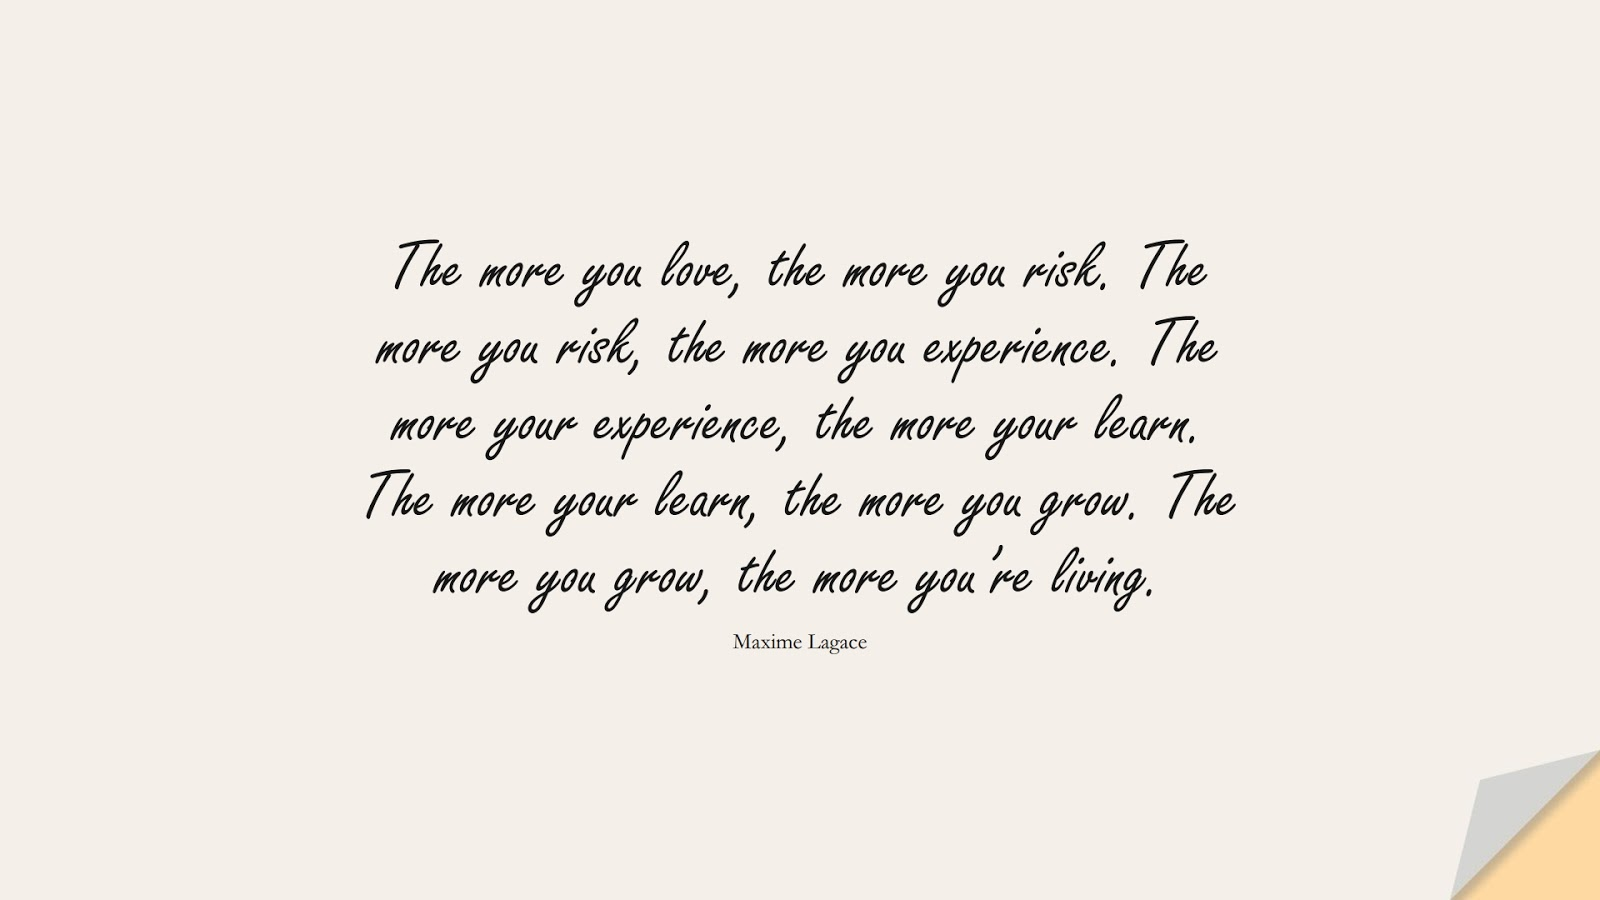 The more you love, the more you risk. The more you risk, the more you experience. The more your experience, the more your learn. The more your learn, the more you grow. The more you grow, the more you're living. (Maxime Lagace);  #ChangeQuotes